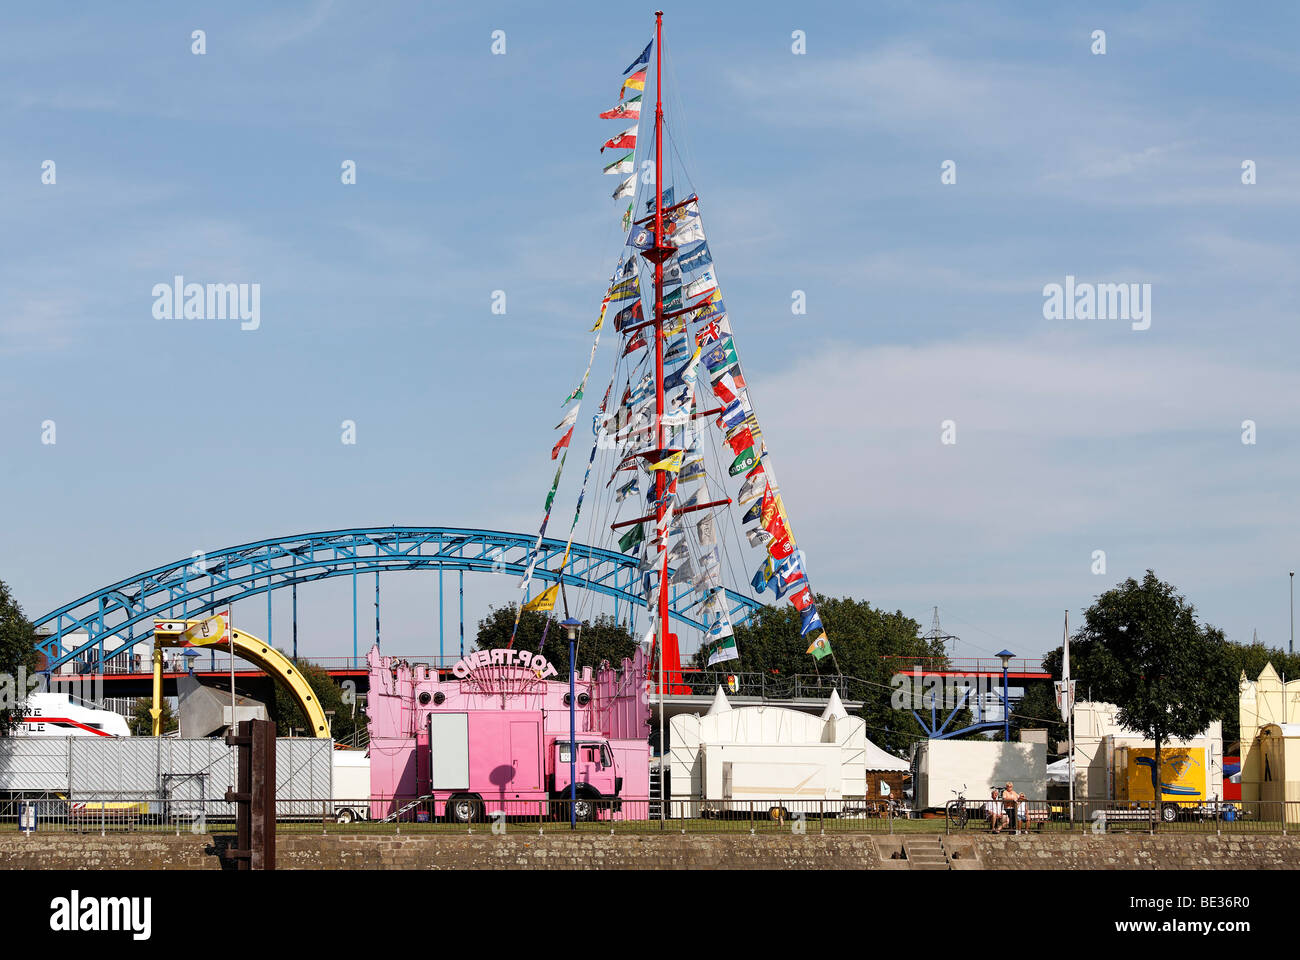 Flagpole with flags of the Duisburg shipping companies, booths of the Ruhrort post festival, Duisburg, Ruhrgebiet - Stock Image